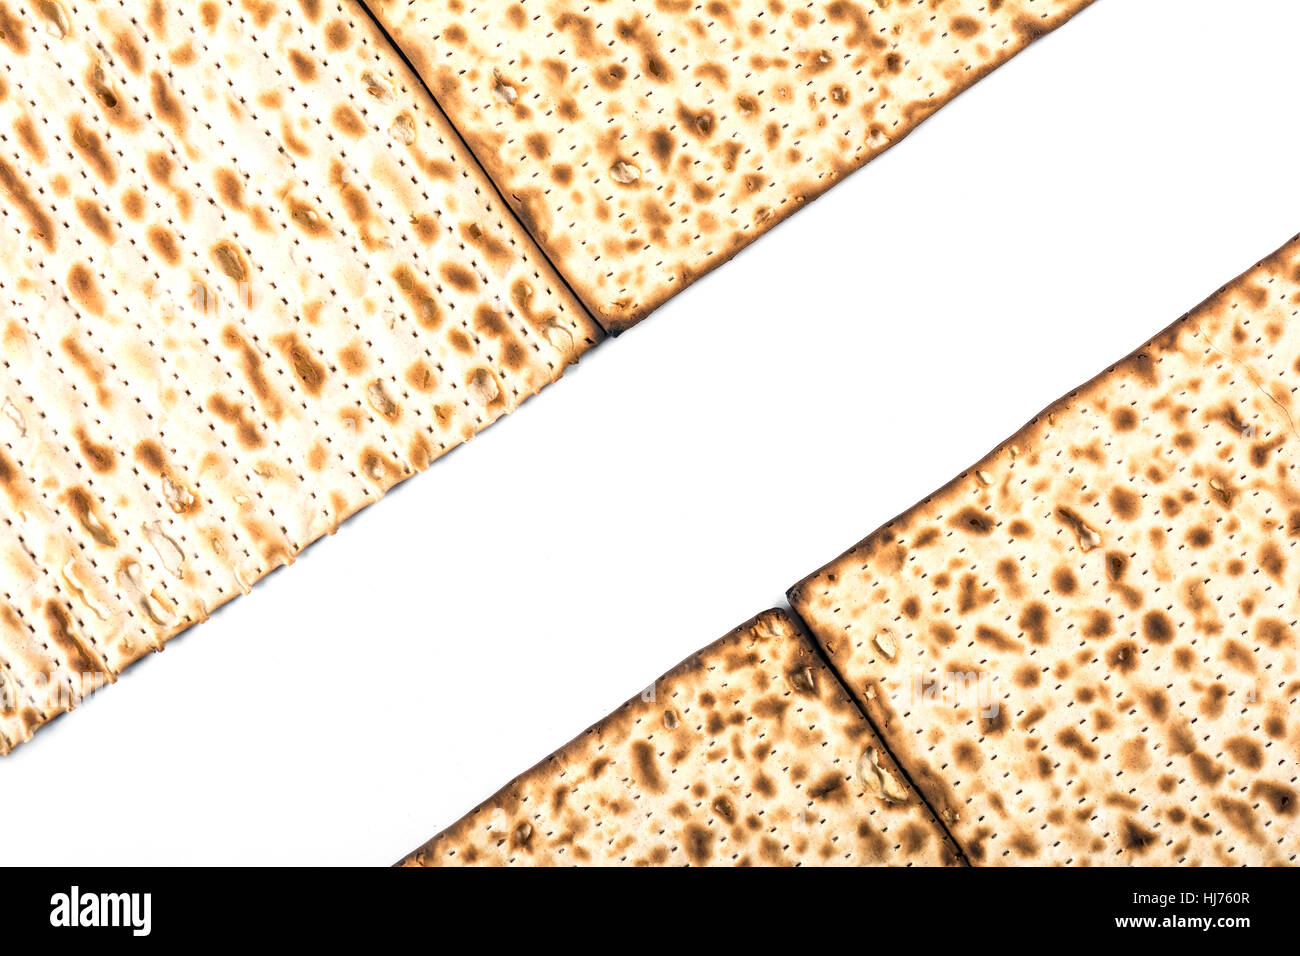 Jewish Matza On Passover Stock Photo, Picture And Royalty Free ...